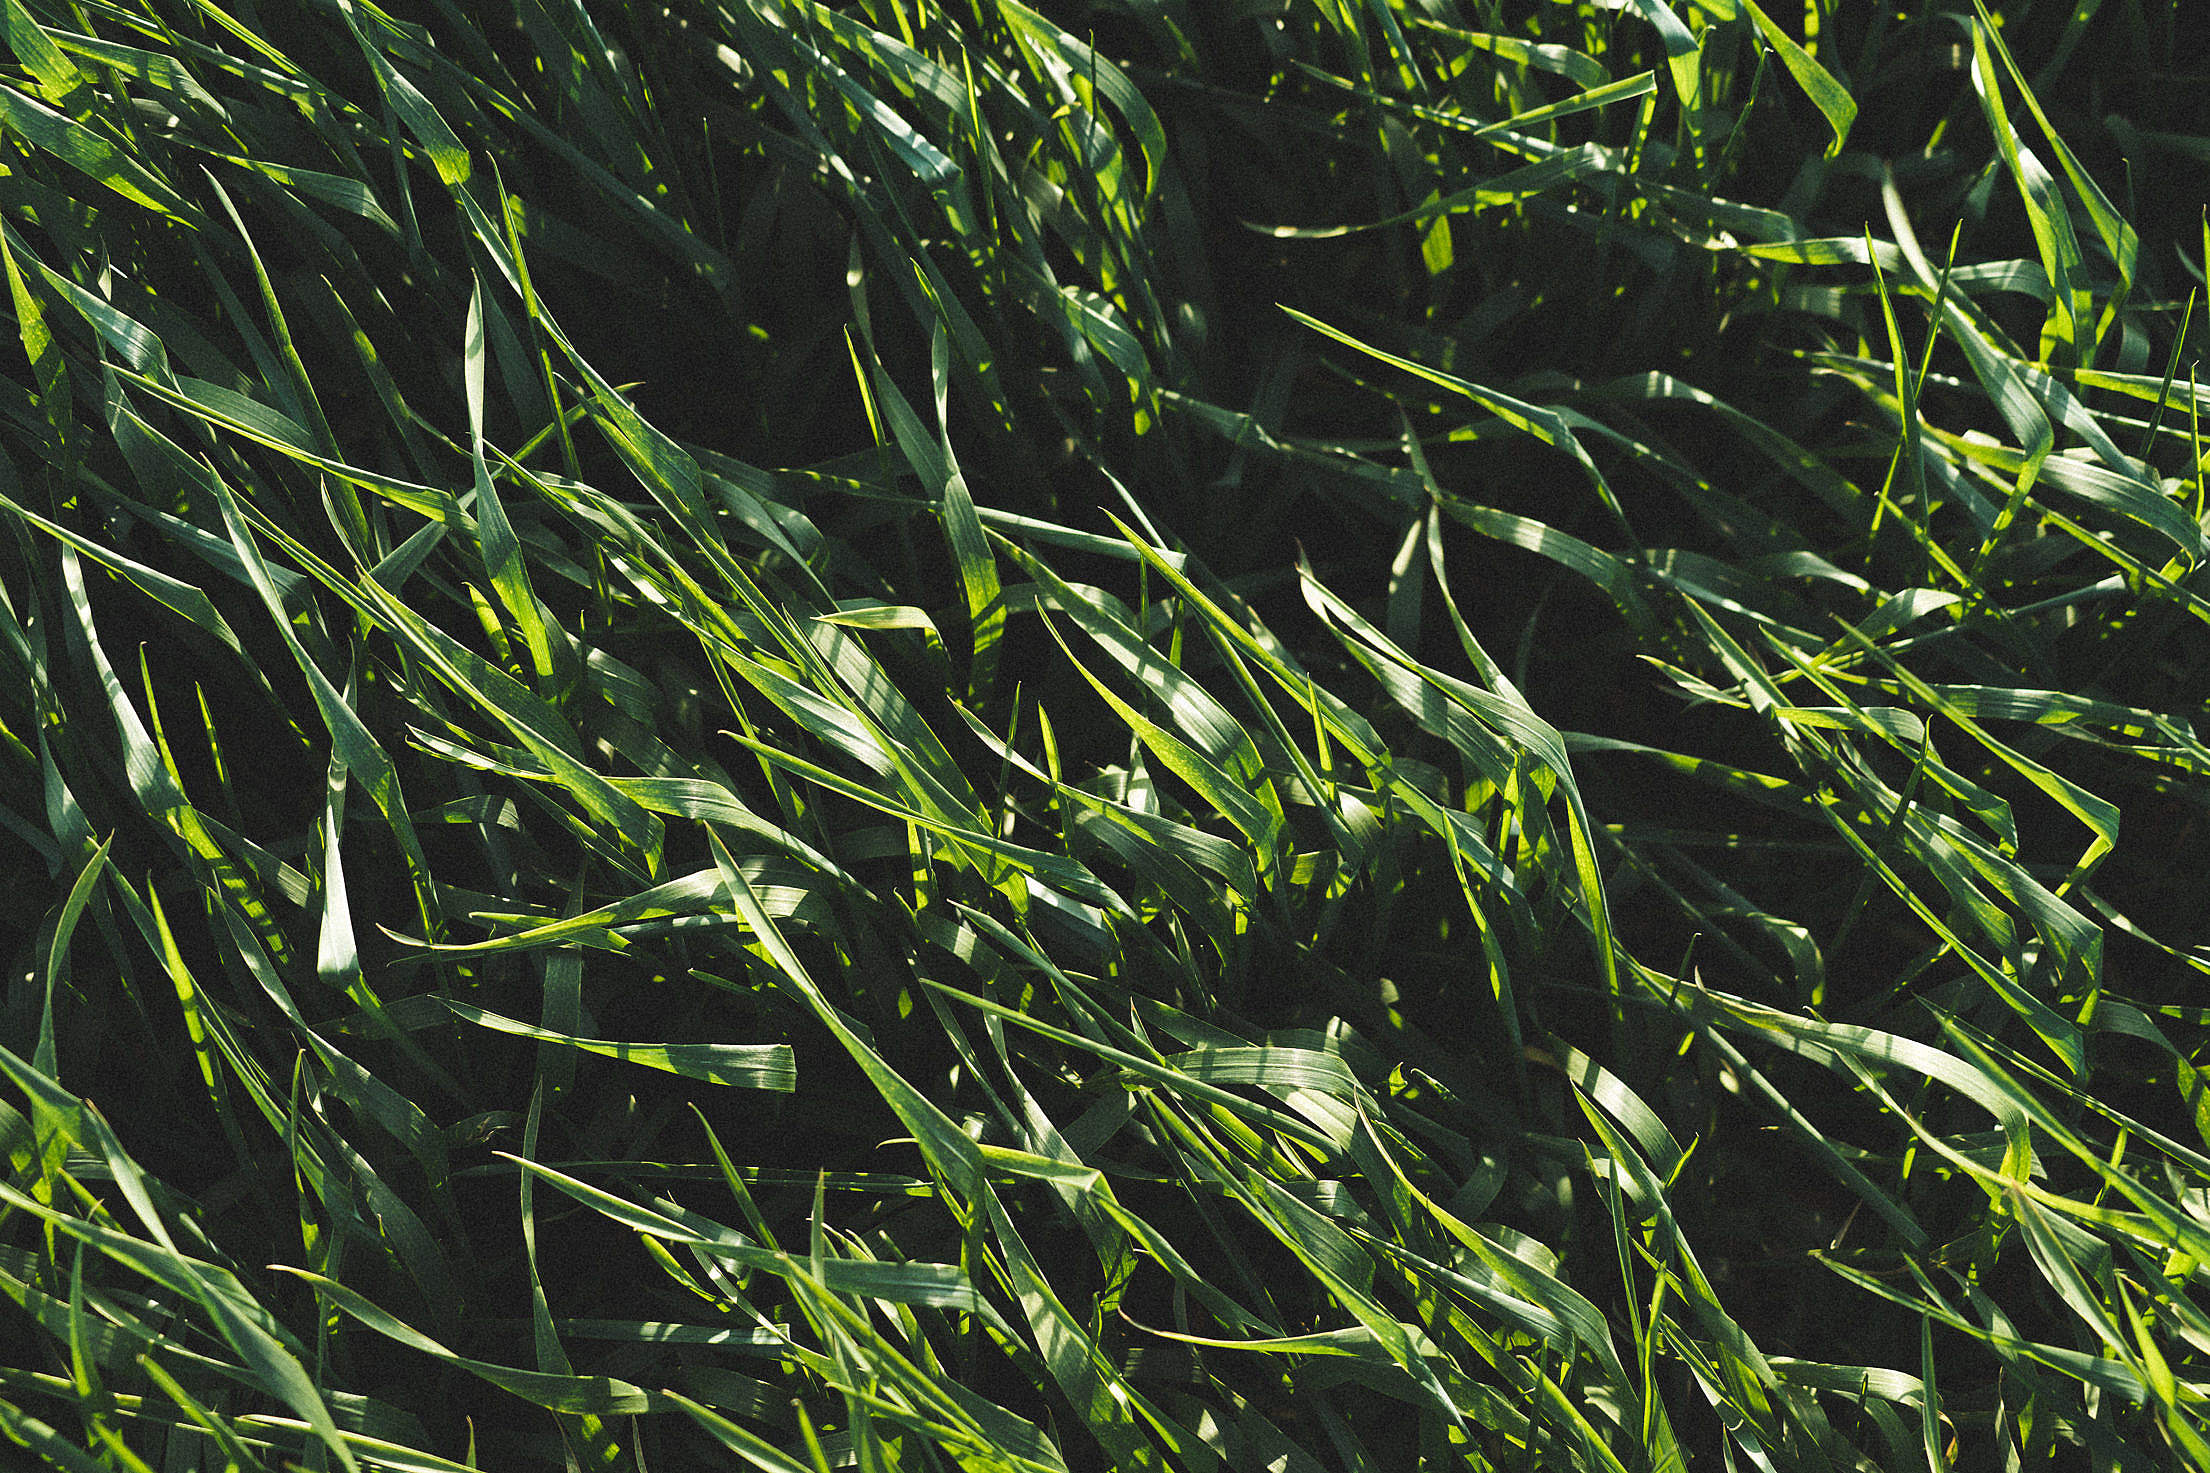 Green Wheat Field Pattern Background Free Stock Photo